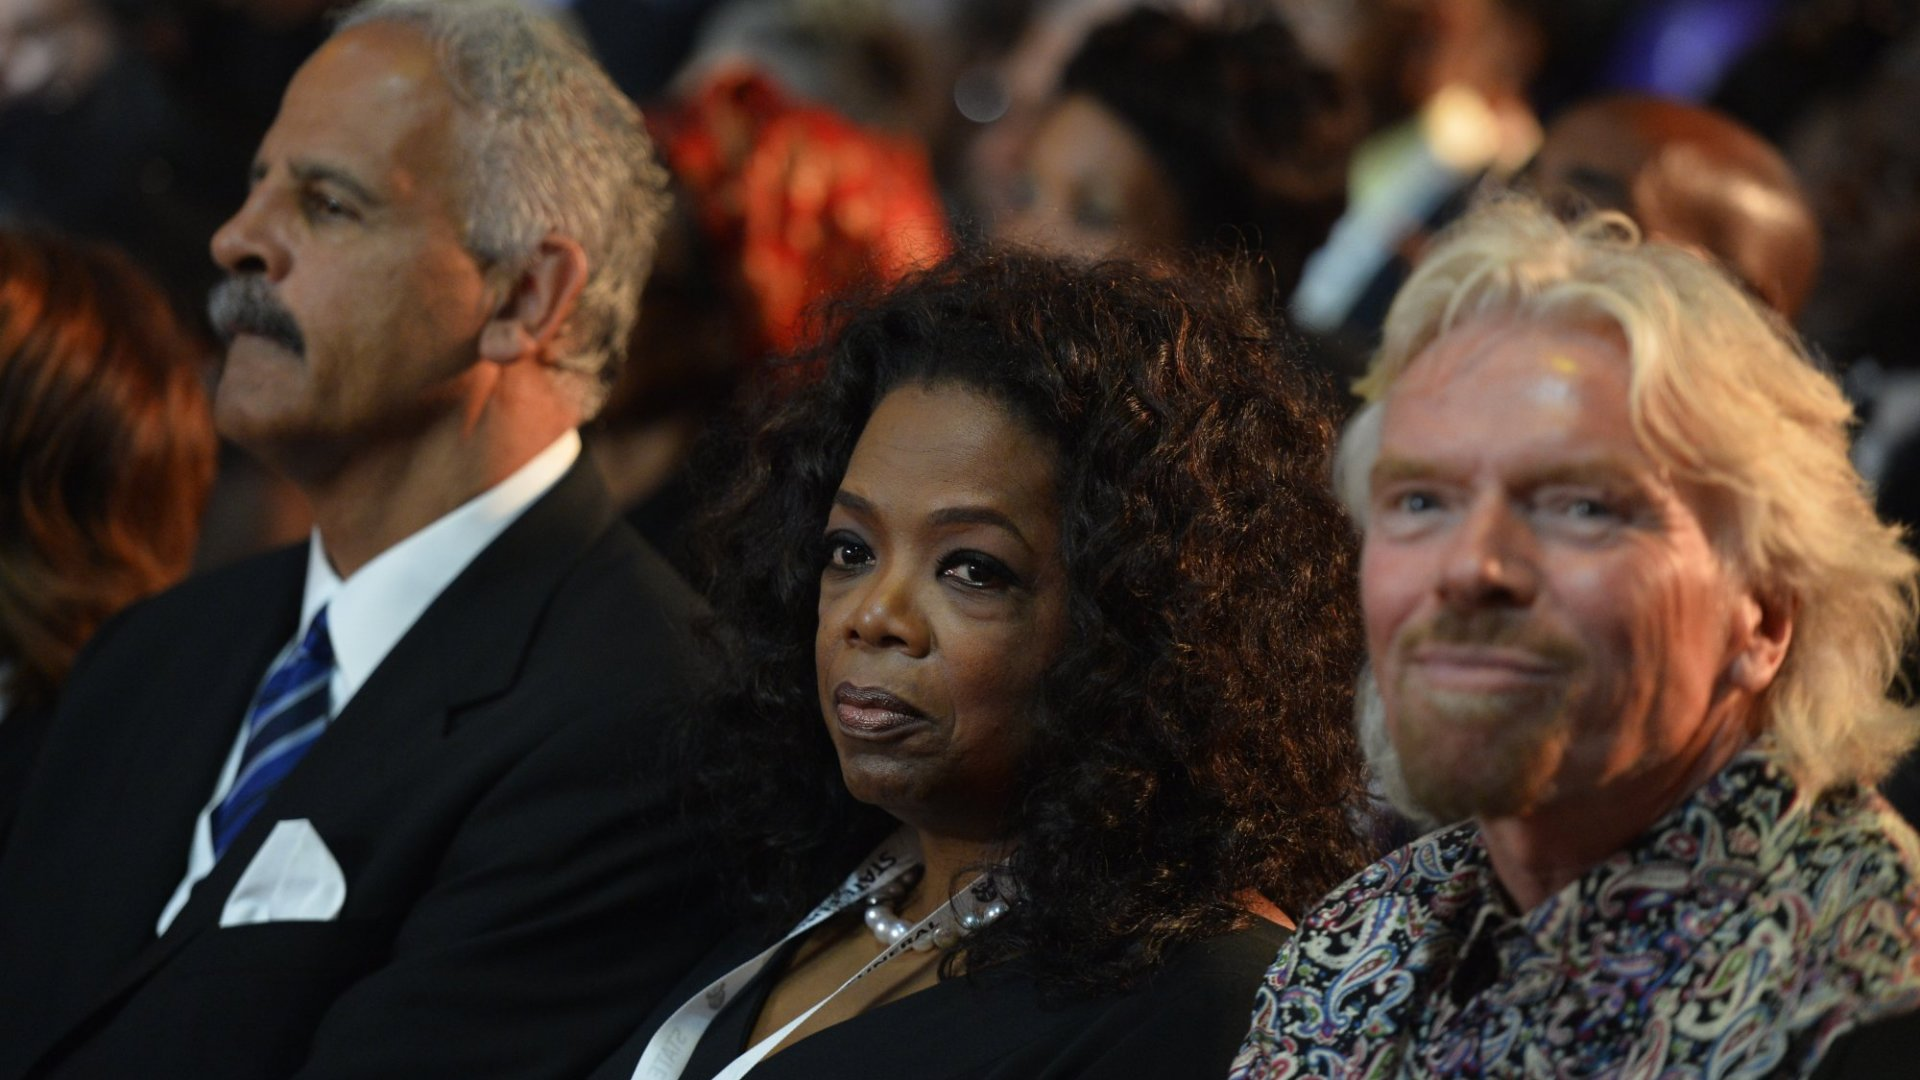 The 1 Trick Oprah and Richard Branson Used to Catapult Their Careers